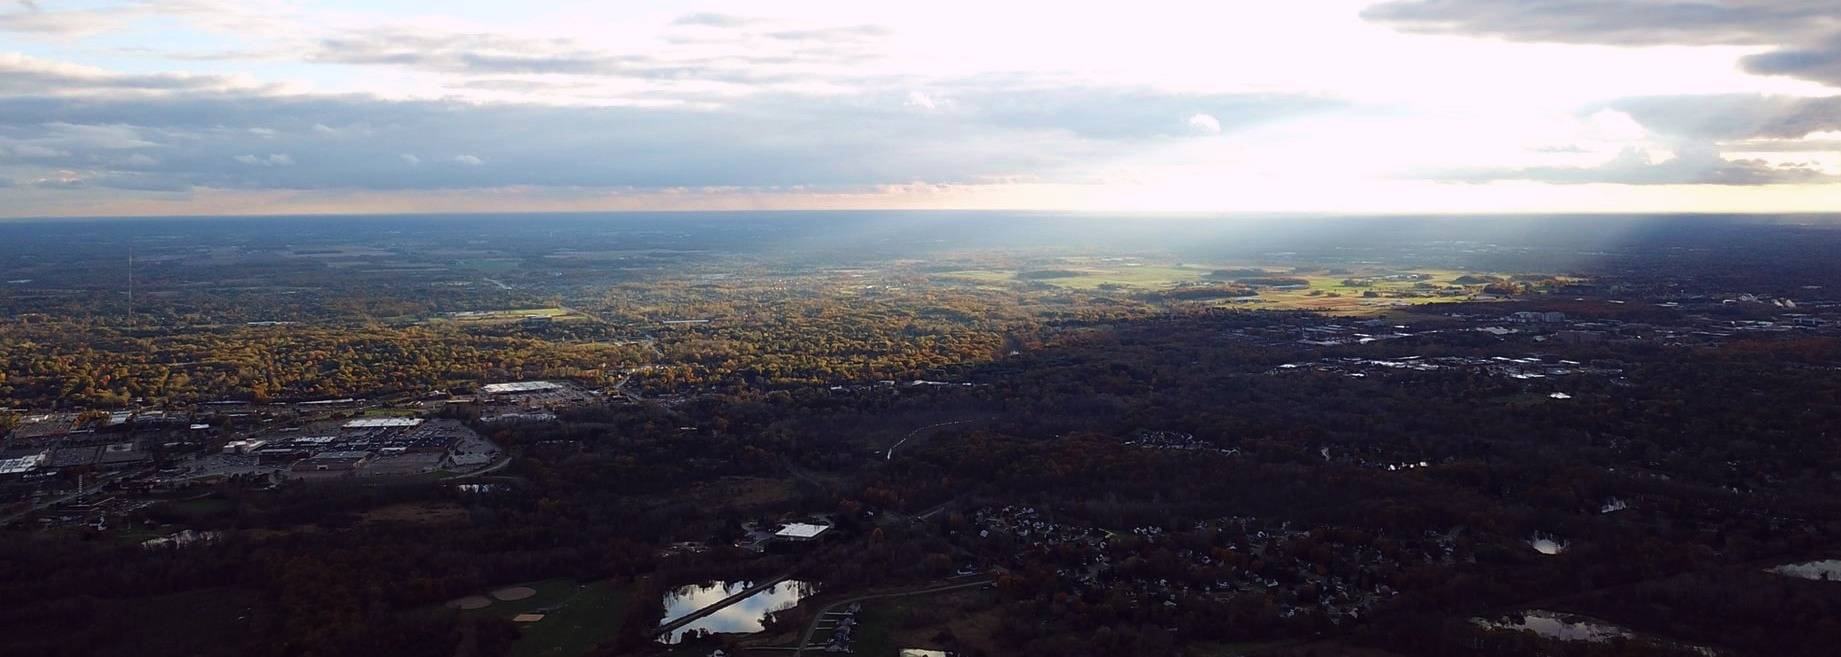 Overlooking Lansing, Michigan | Breast Cancer Car Donations